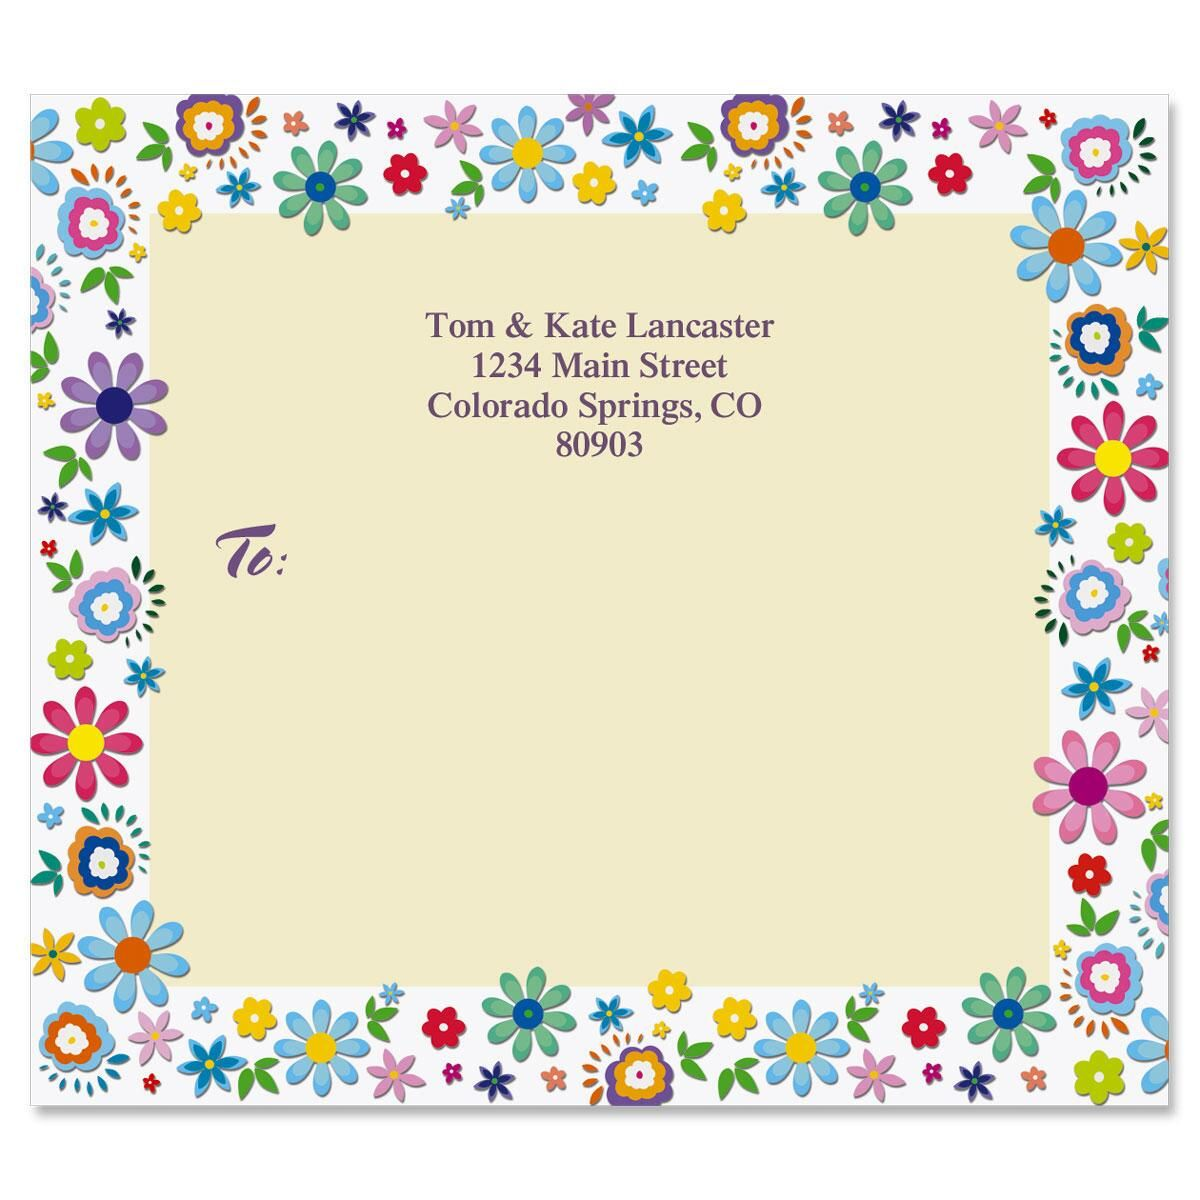 Cheerful Florals Mailing Package Label